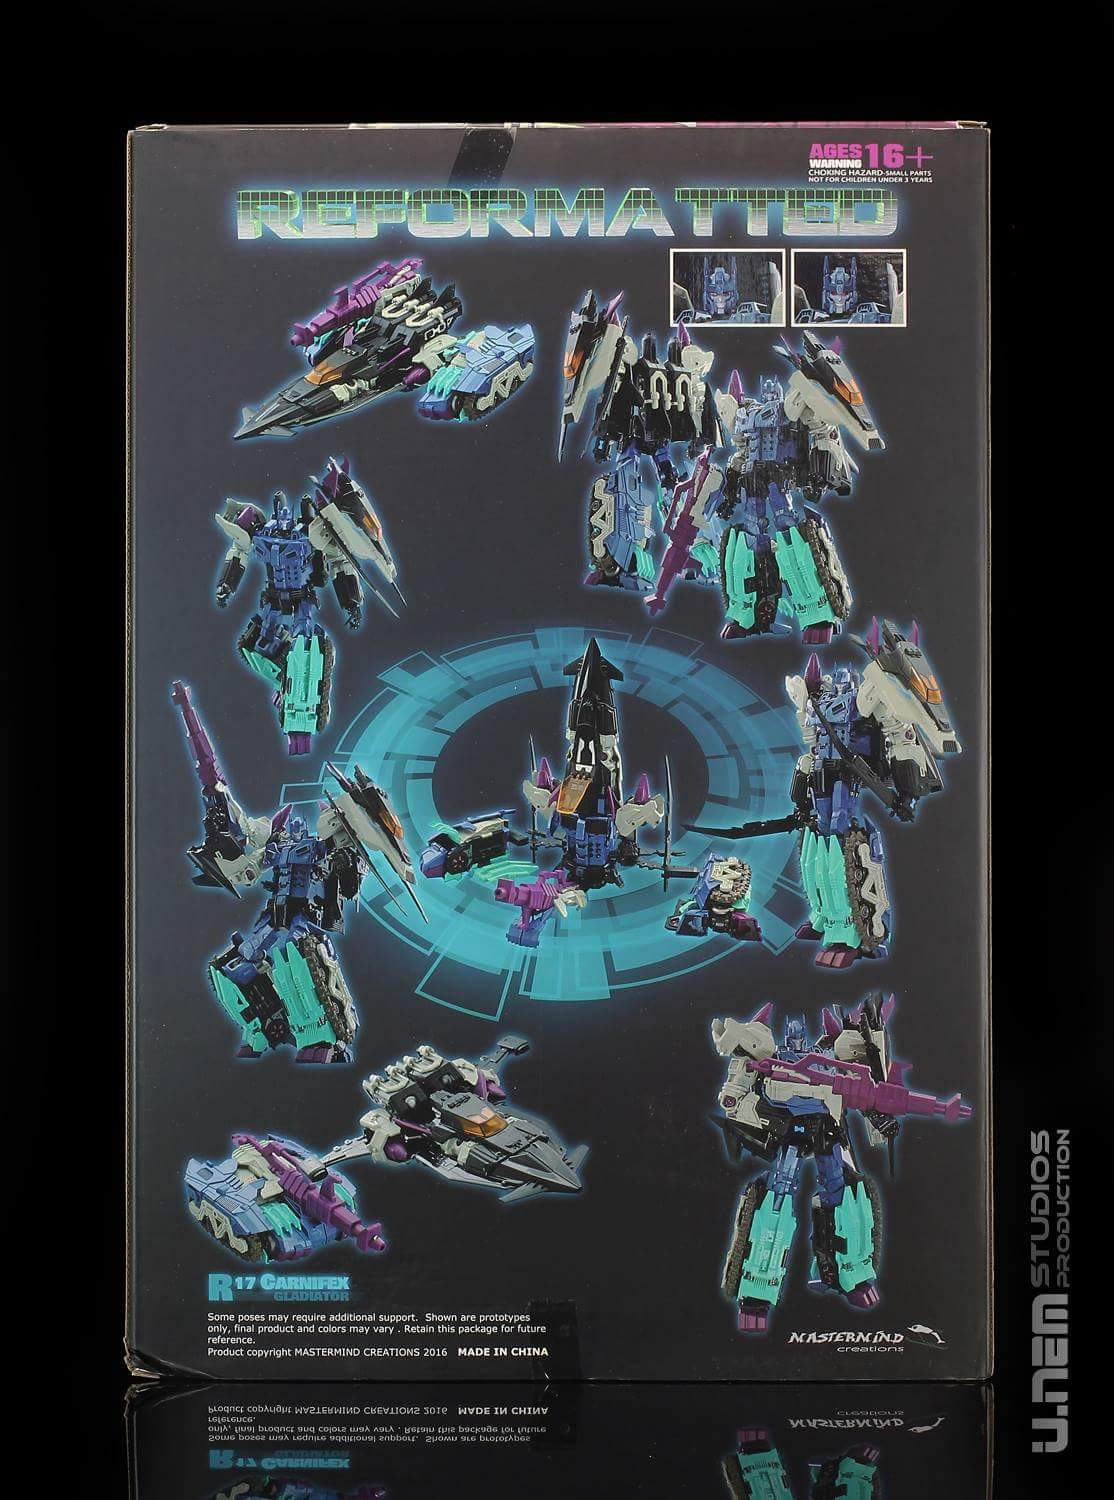 [Mastermind Creations] Produit Tiers - R-17 Carnifex - aka Overlord (TF Masterforce) - Page 3 7GbAQQ6i